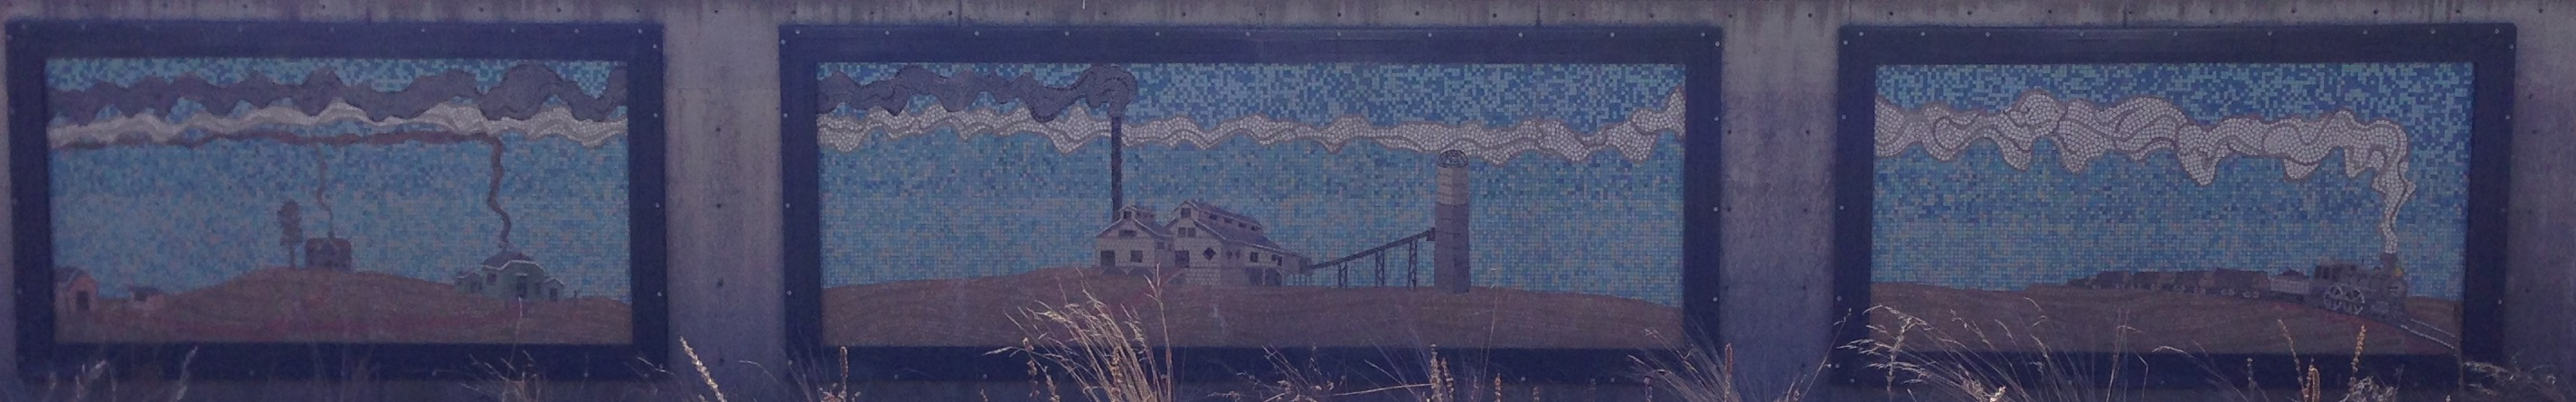 Sawmill County Park Tile Mural